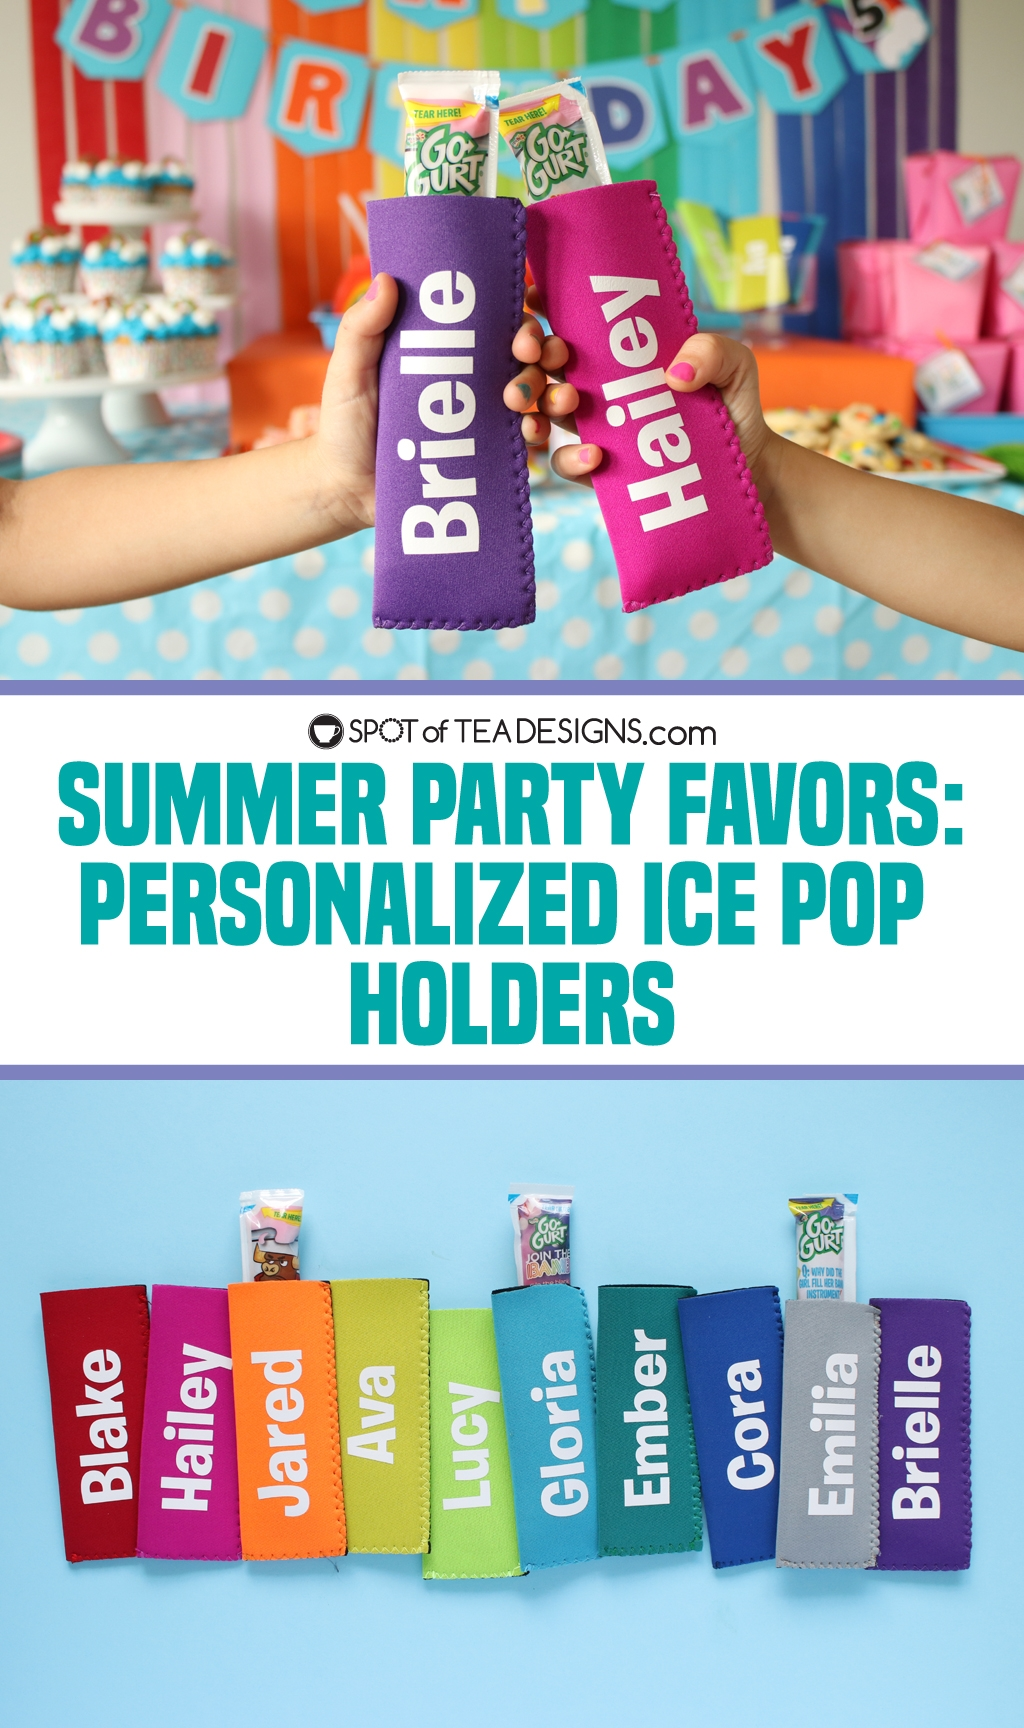 Summer party favors: personalized ice pop holders | spotofteadesigns.com